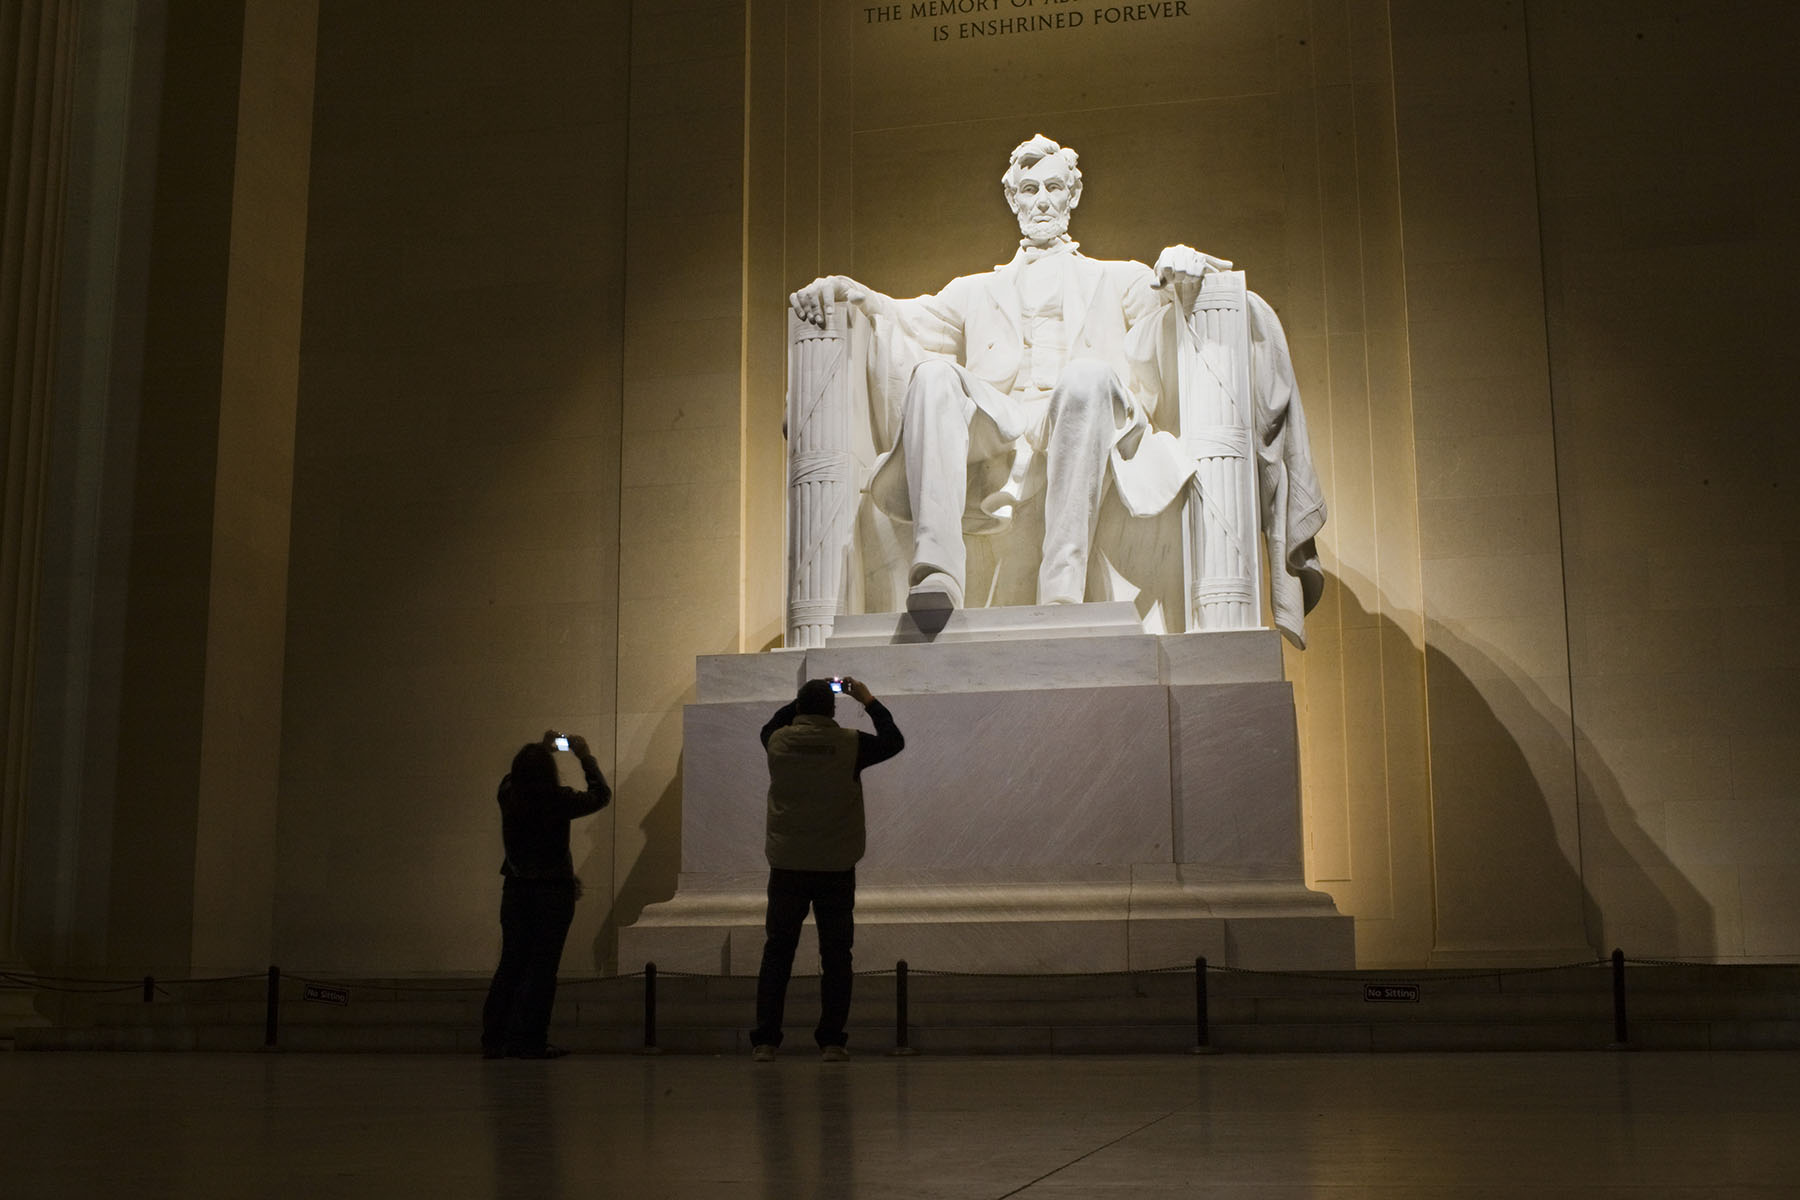 Tourists inside the Lincoln Memorial,  built to honor the 16th President of the United States, Abraham Lincoln.  It is located on the National Mall in Washington, D.C. Photo by Brooks Kraft/Corbis